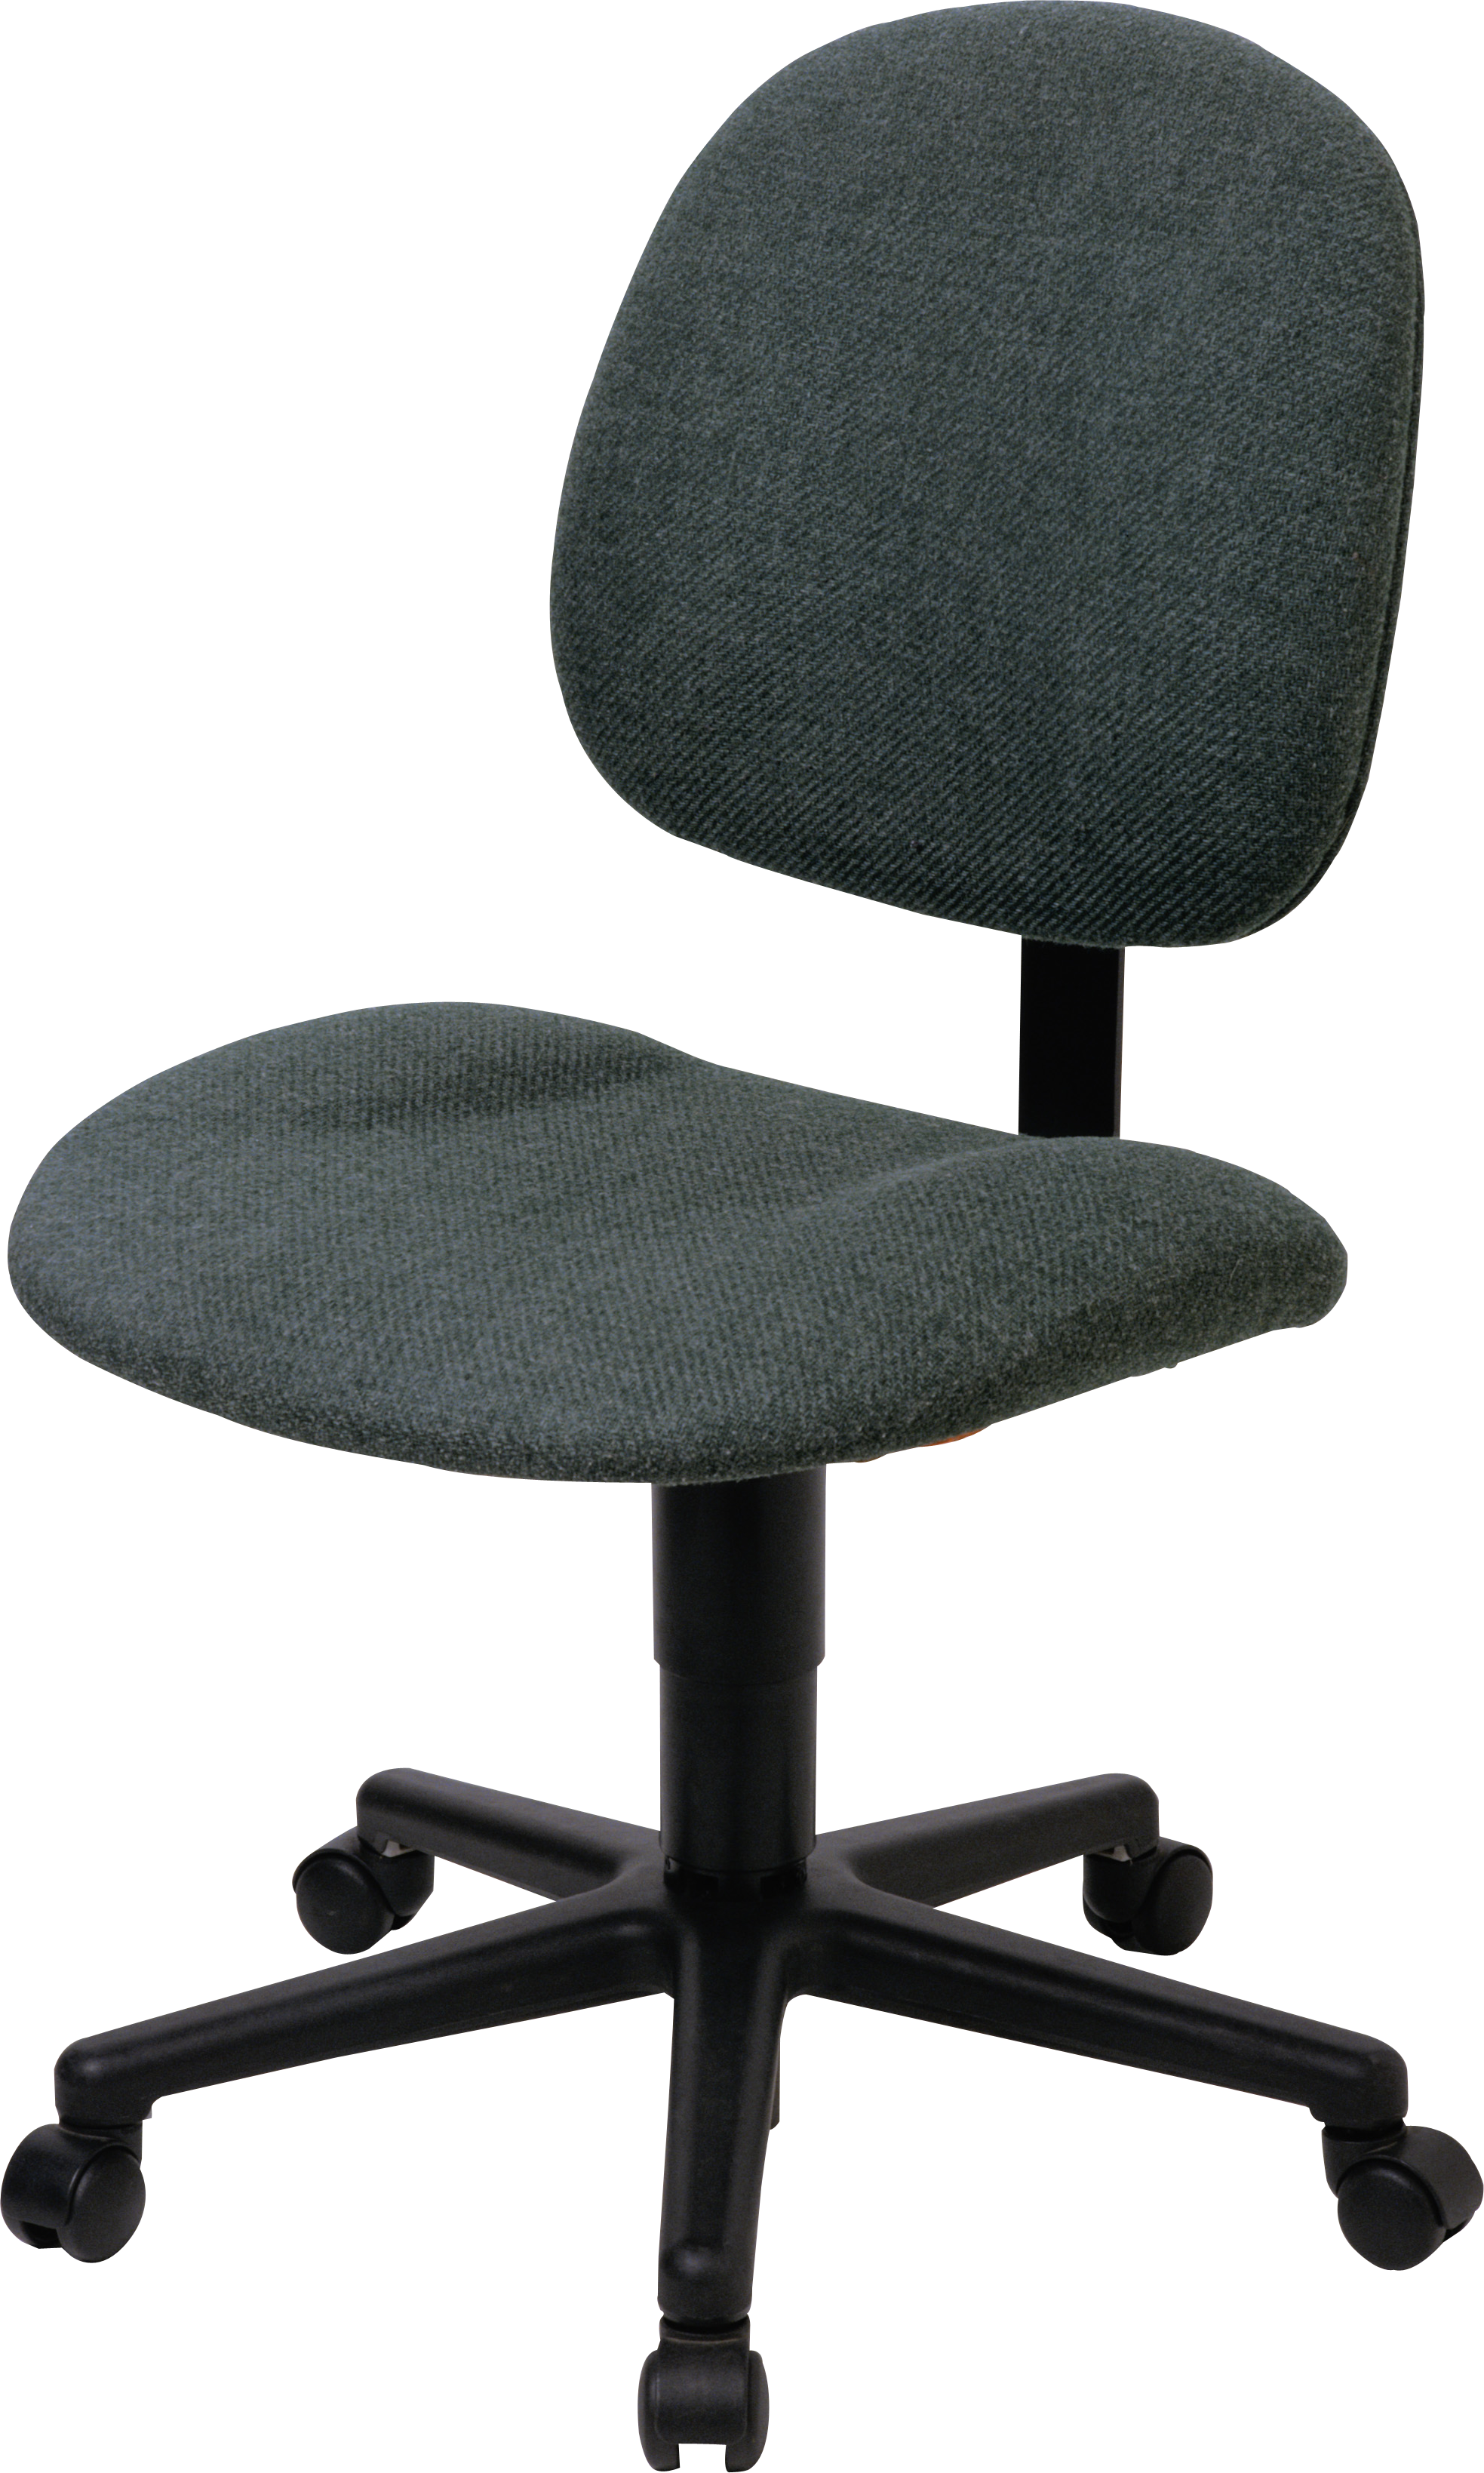 Chair PNG images free download.